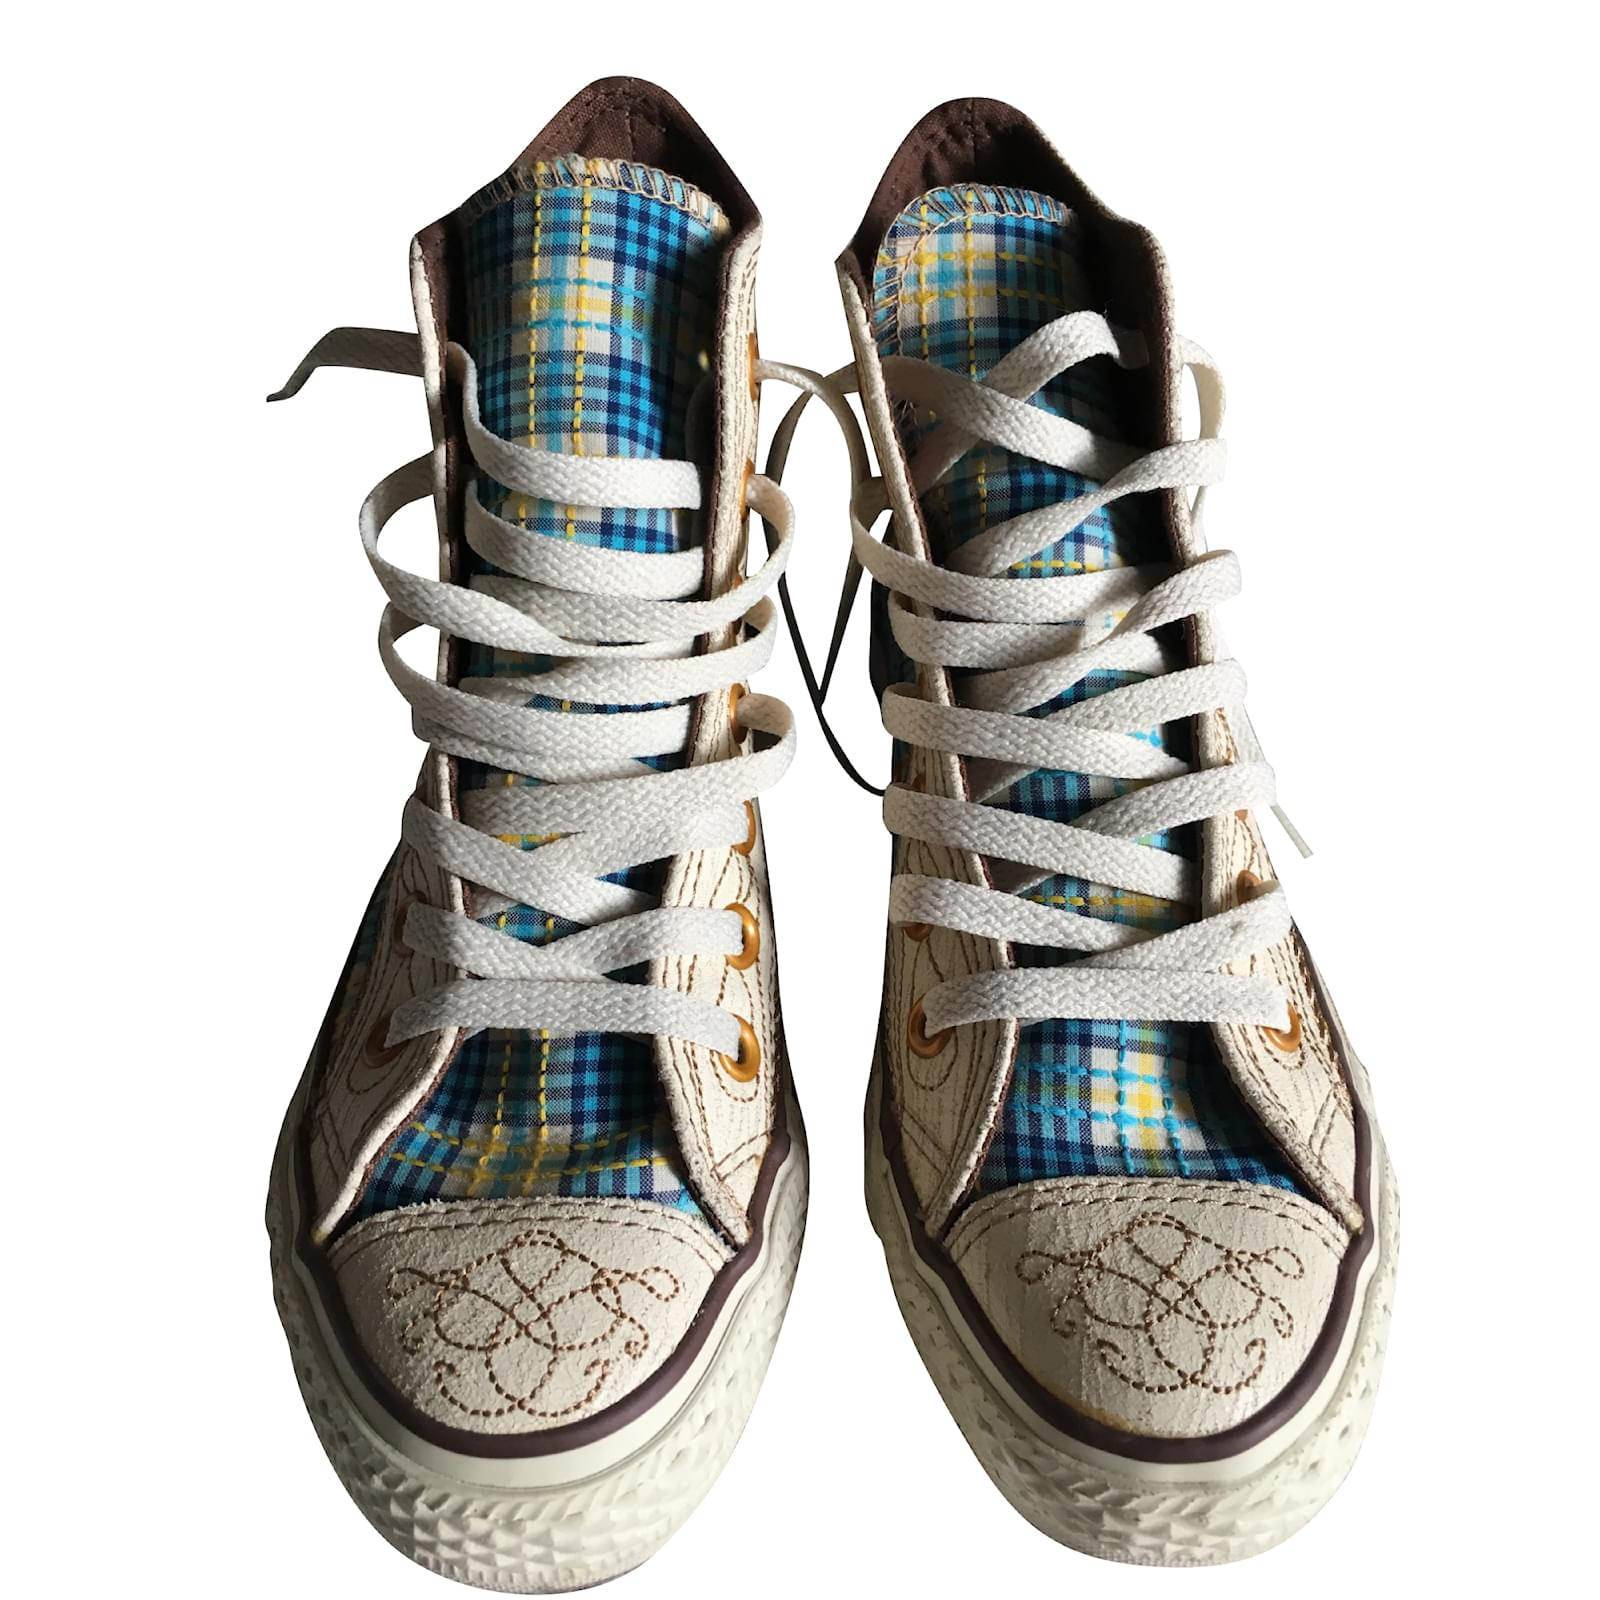 45902123c33 Converse Pair of Converse All Star Chuck Taylor High Special Edition  Sneakers Cotton White